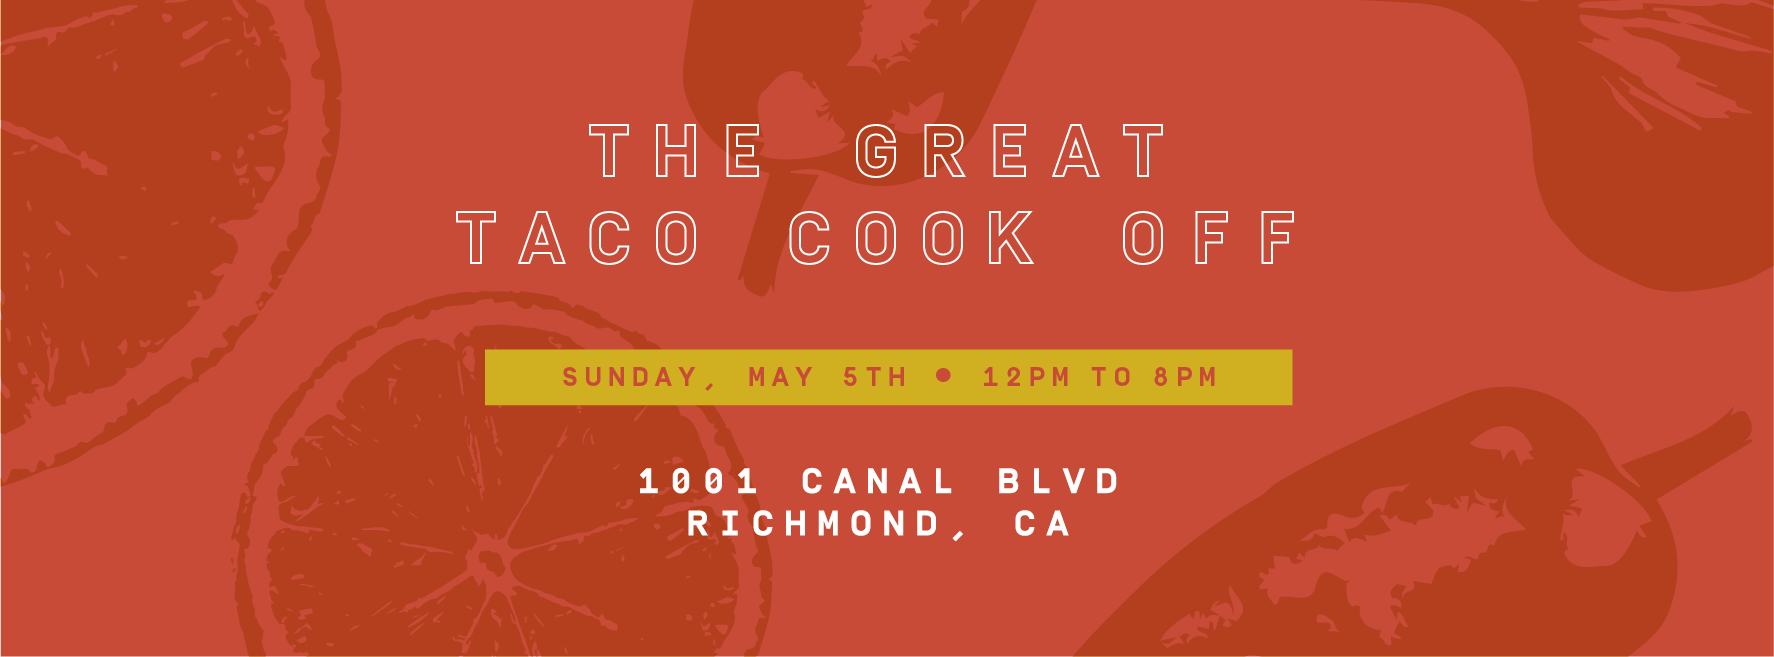 GreatTacoCookOff_Social_facebook.cover.png